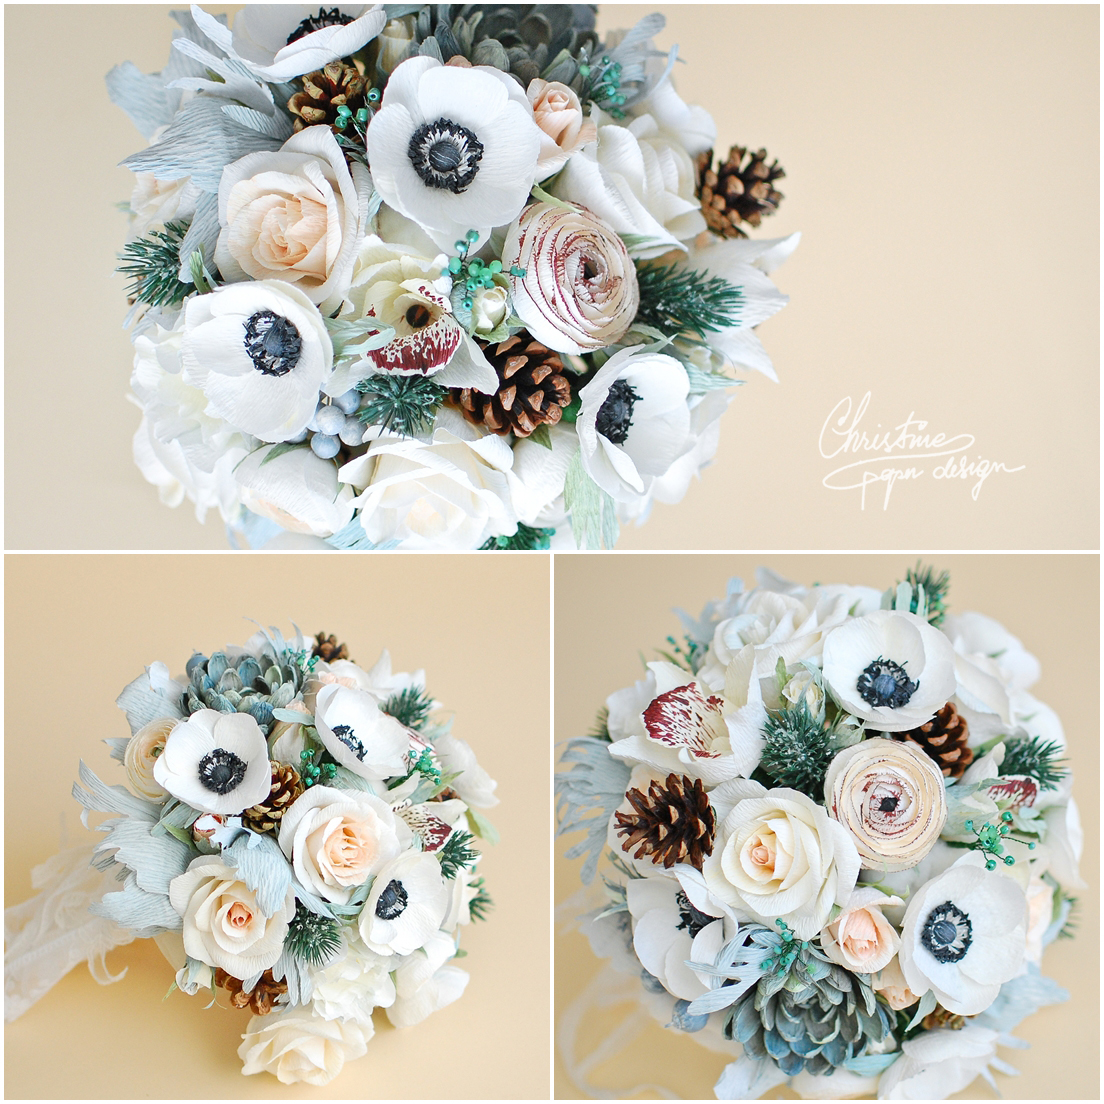 5Christine paper design - alternative wedding bouquet2